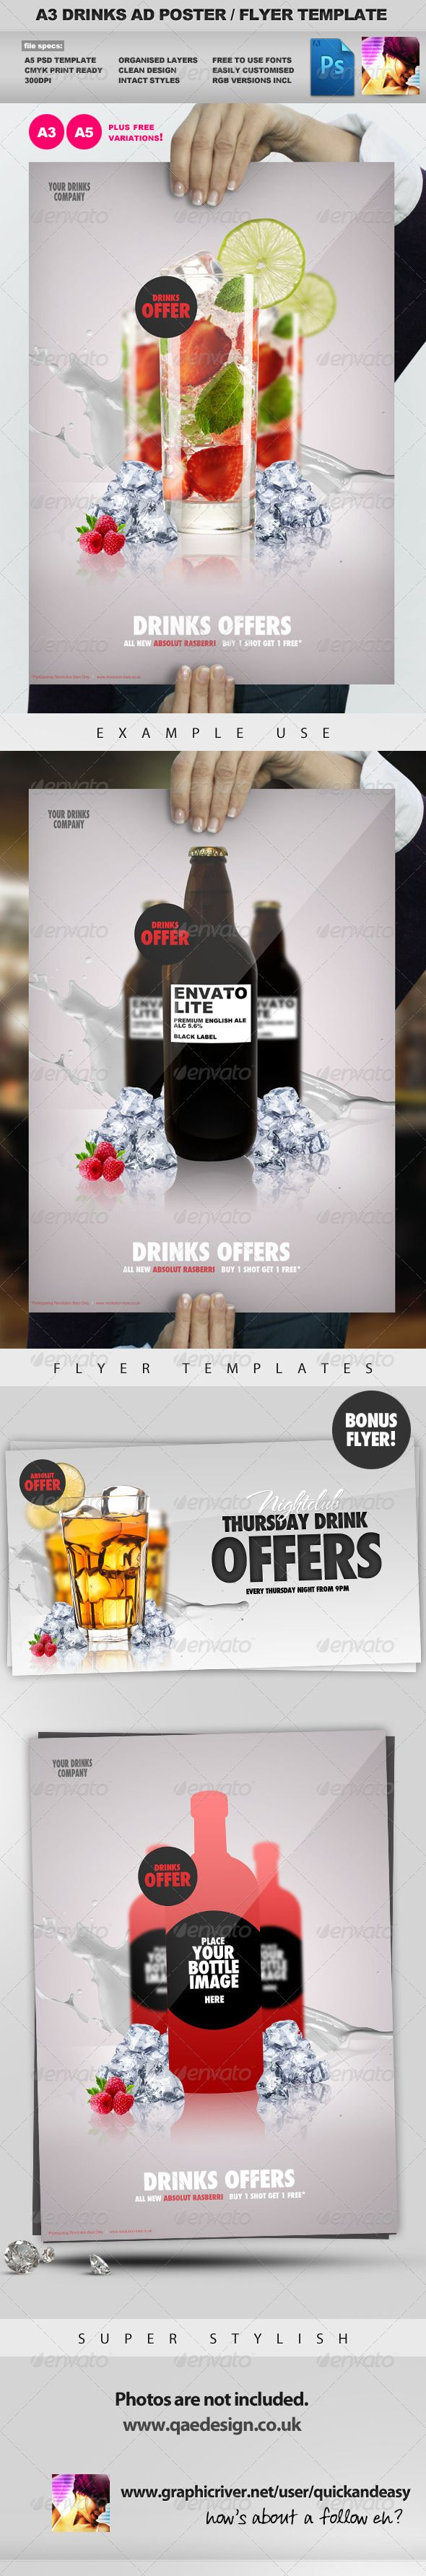 Advertising Poster Templates Pleasing A3 Drinks Promotion Advertisement Poster Template  Pinterest .